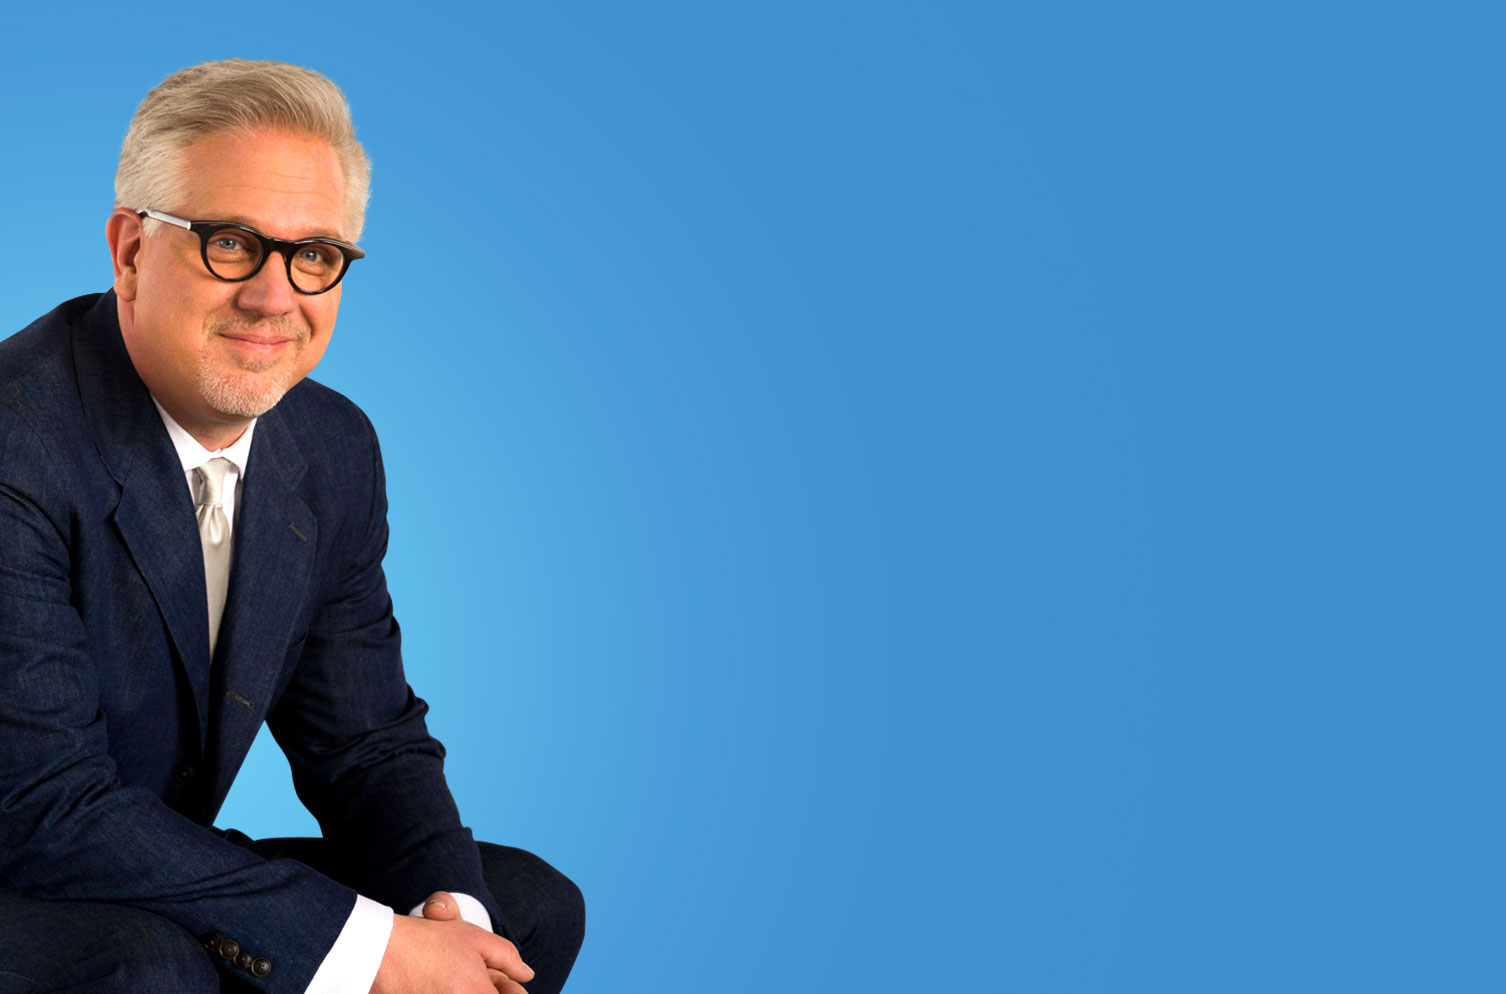 Image of Glen Beck with blue background behind him